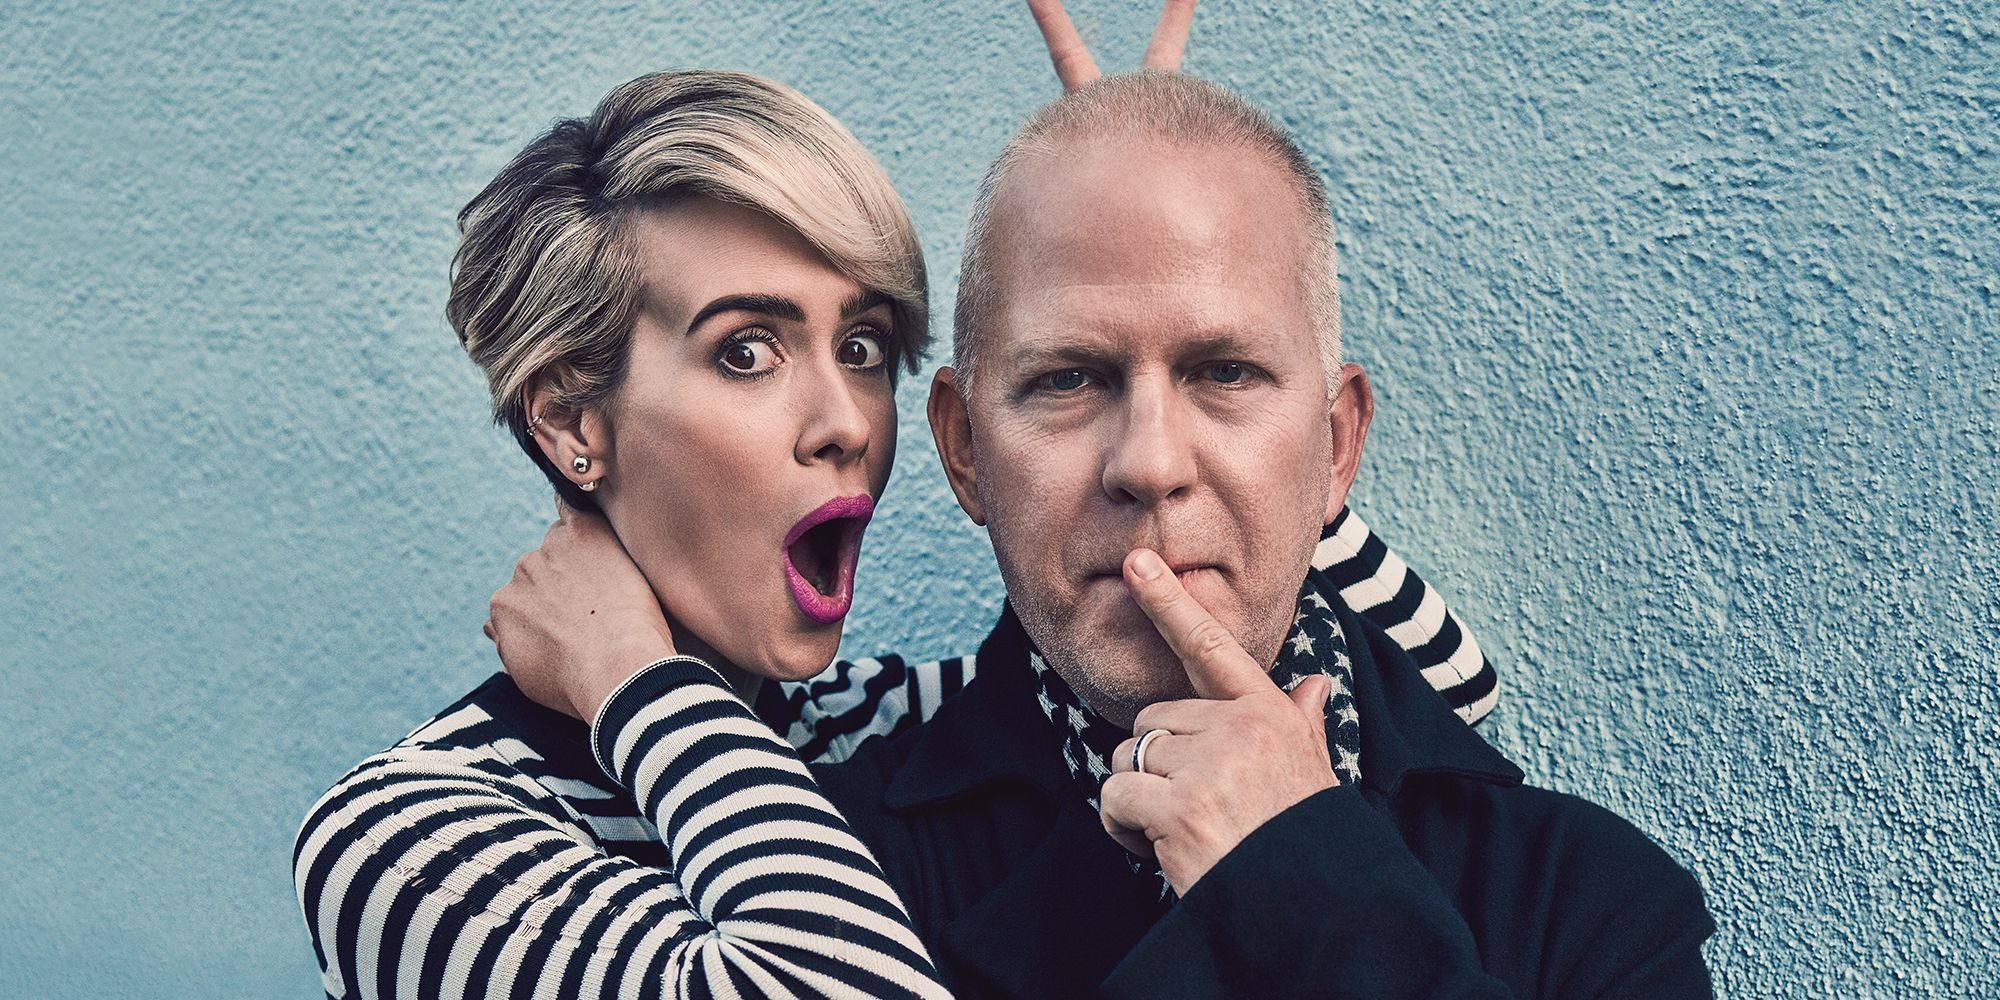 Sarah Paulson & Ryan Murphy Interview - American Horror Story Actress and Director on Collaboration